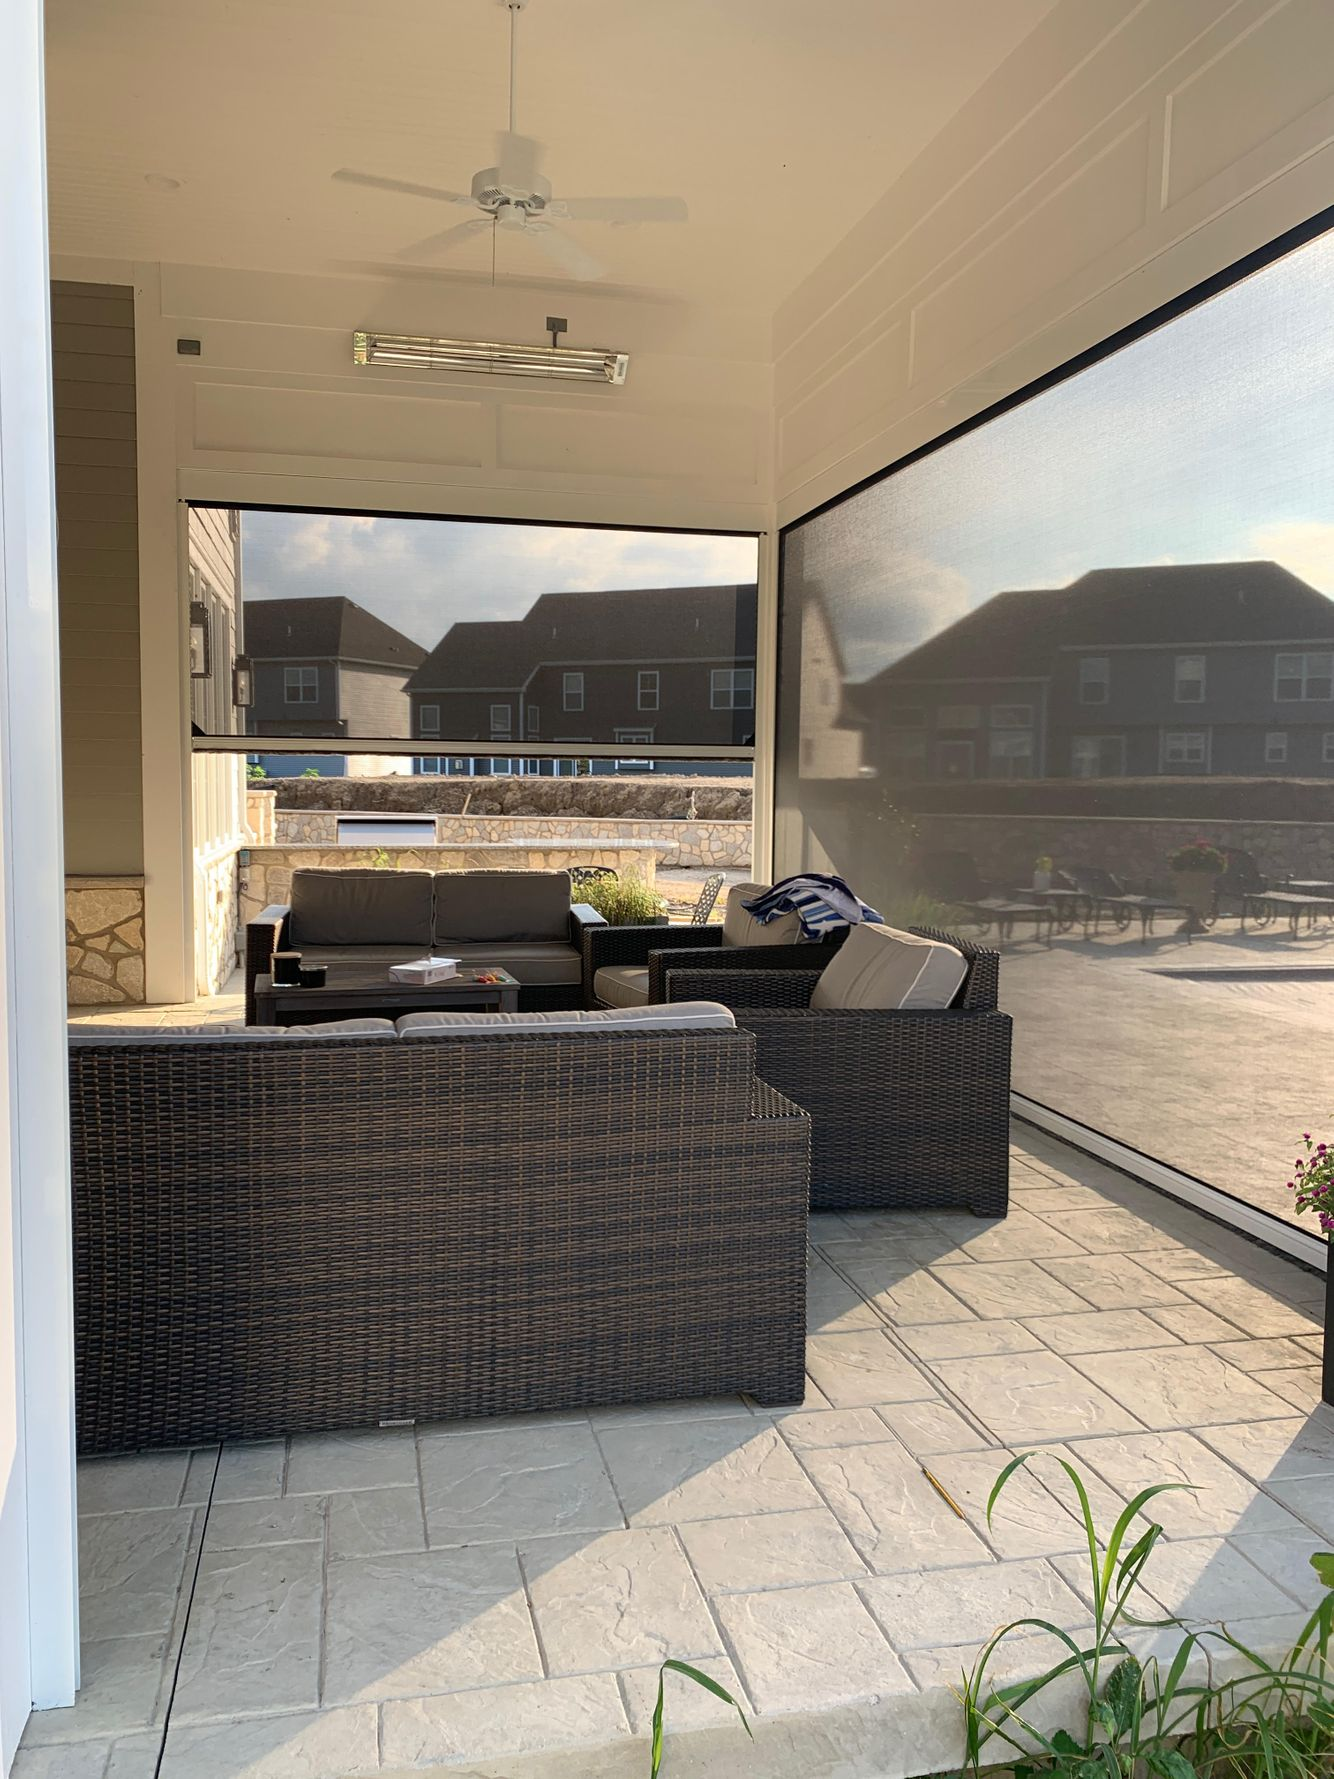 Privacy on your patio